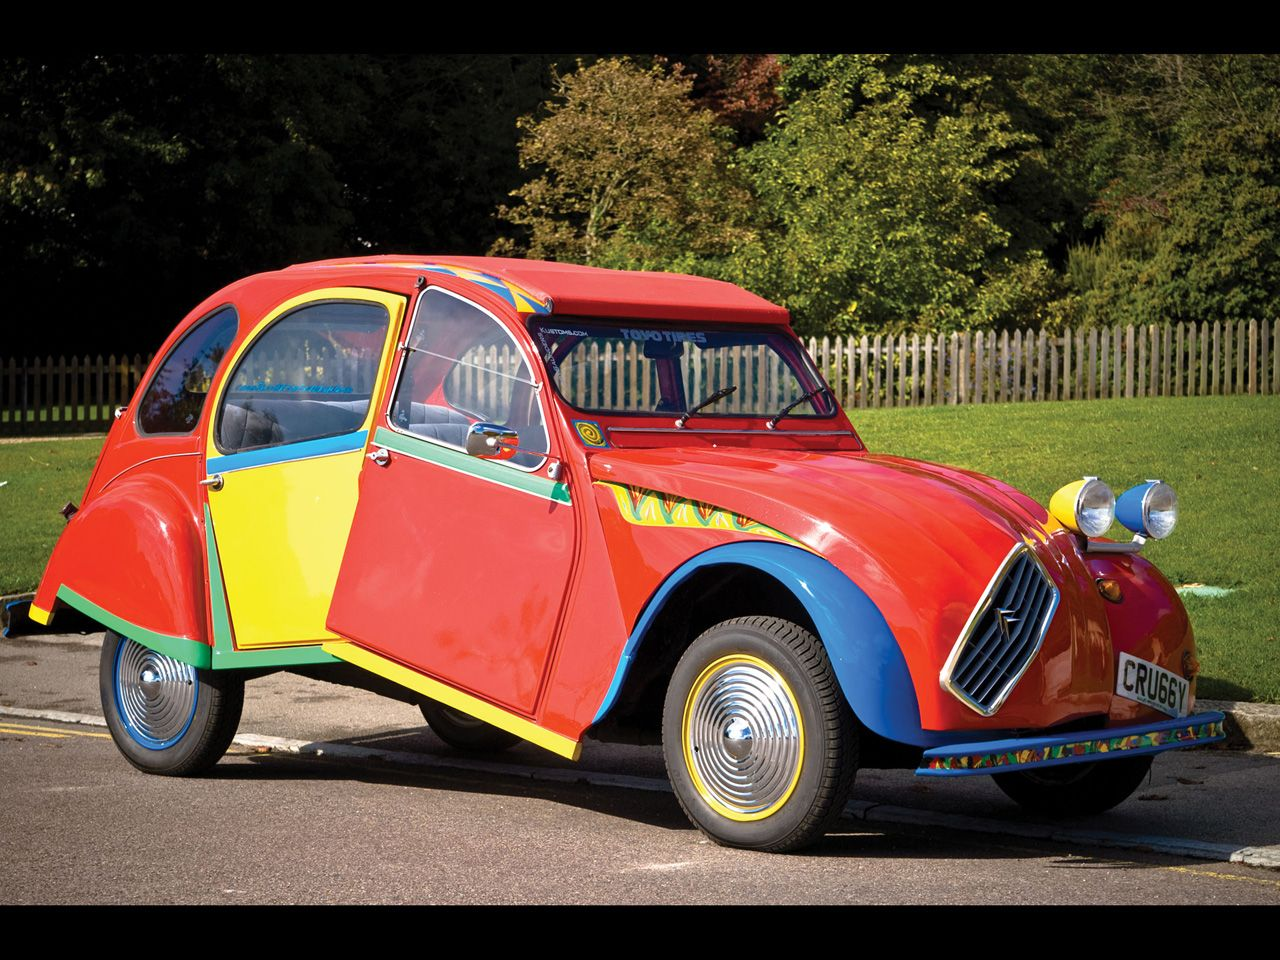 Citroen 2cv Picasso 44 Year Old Mechanic Andy Saunders Spent Six Months Turning An Aged Citroen 2cv Into A Cubist Work Picasso Citroen Citroen 2cv Citroen